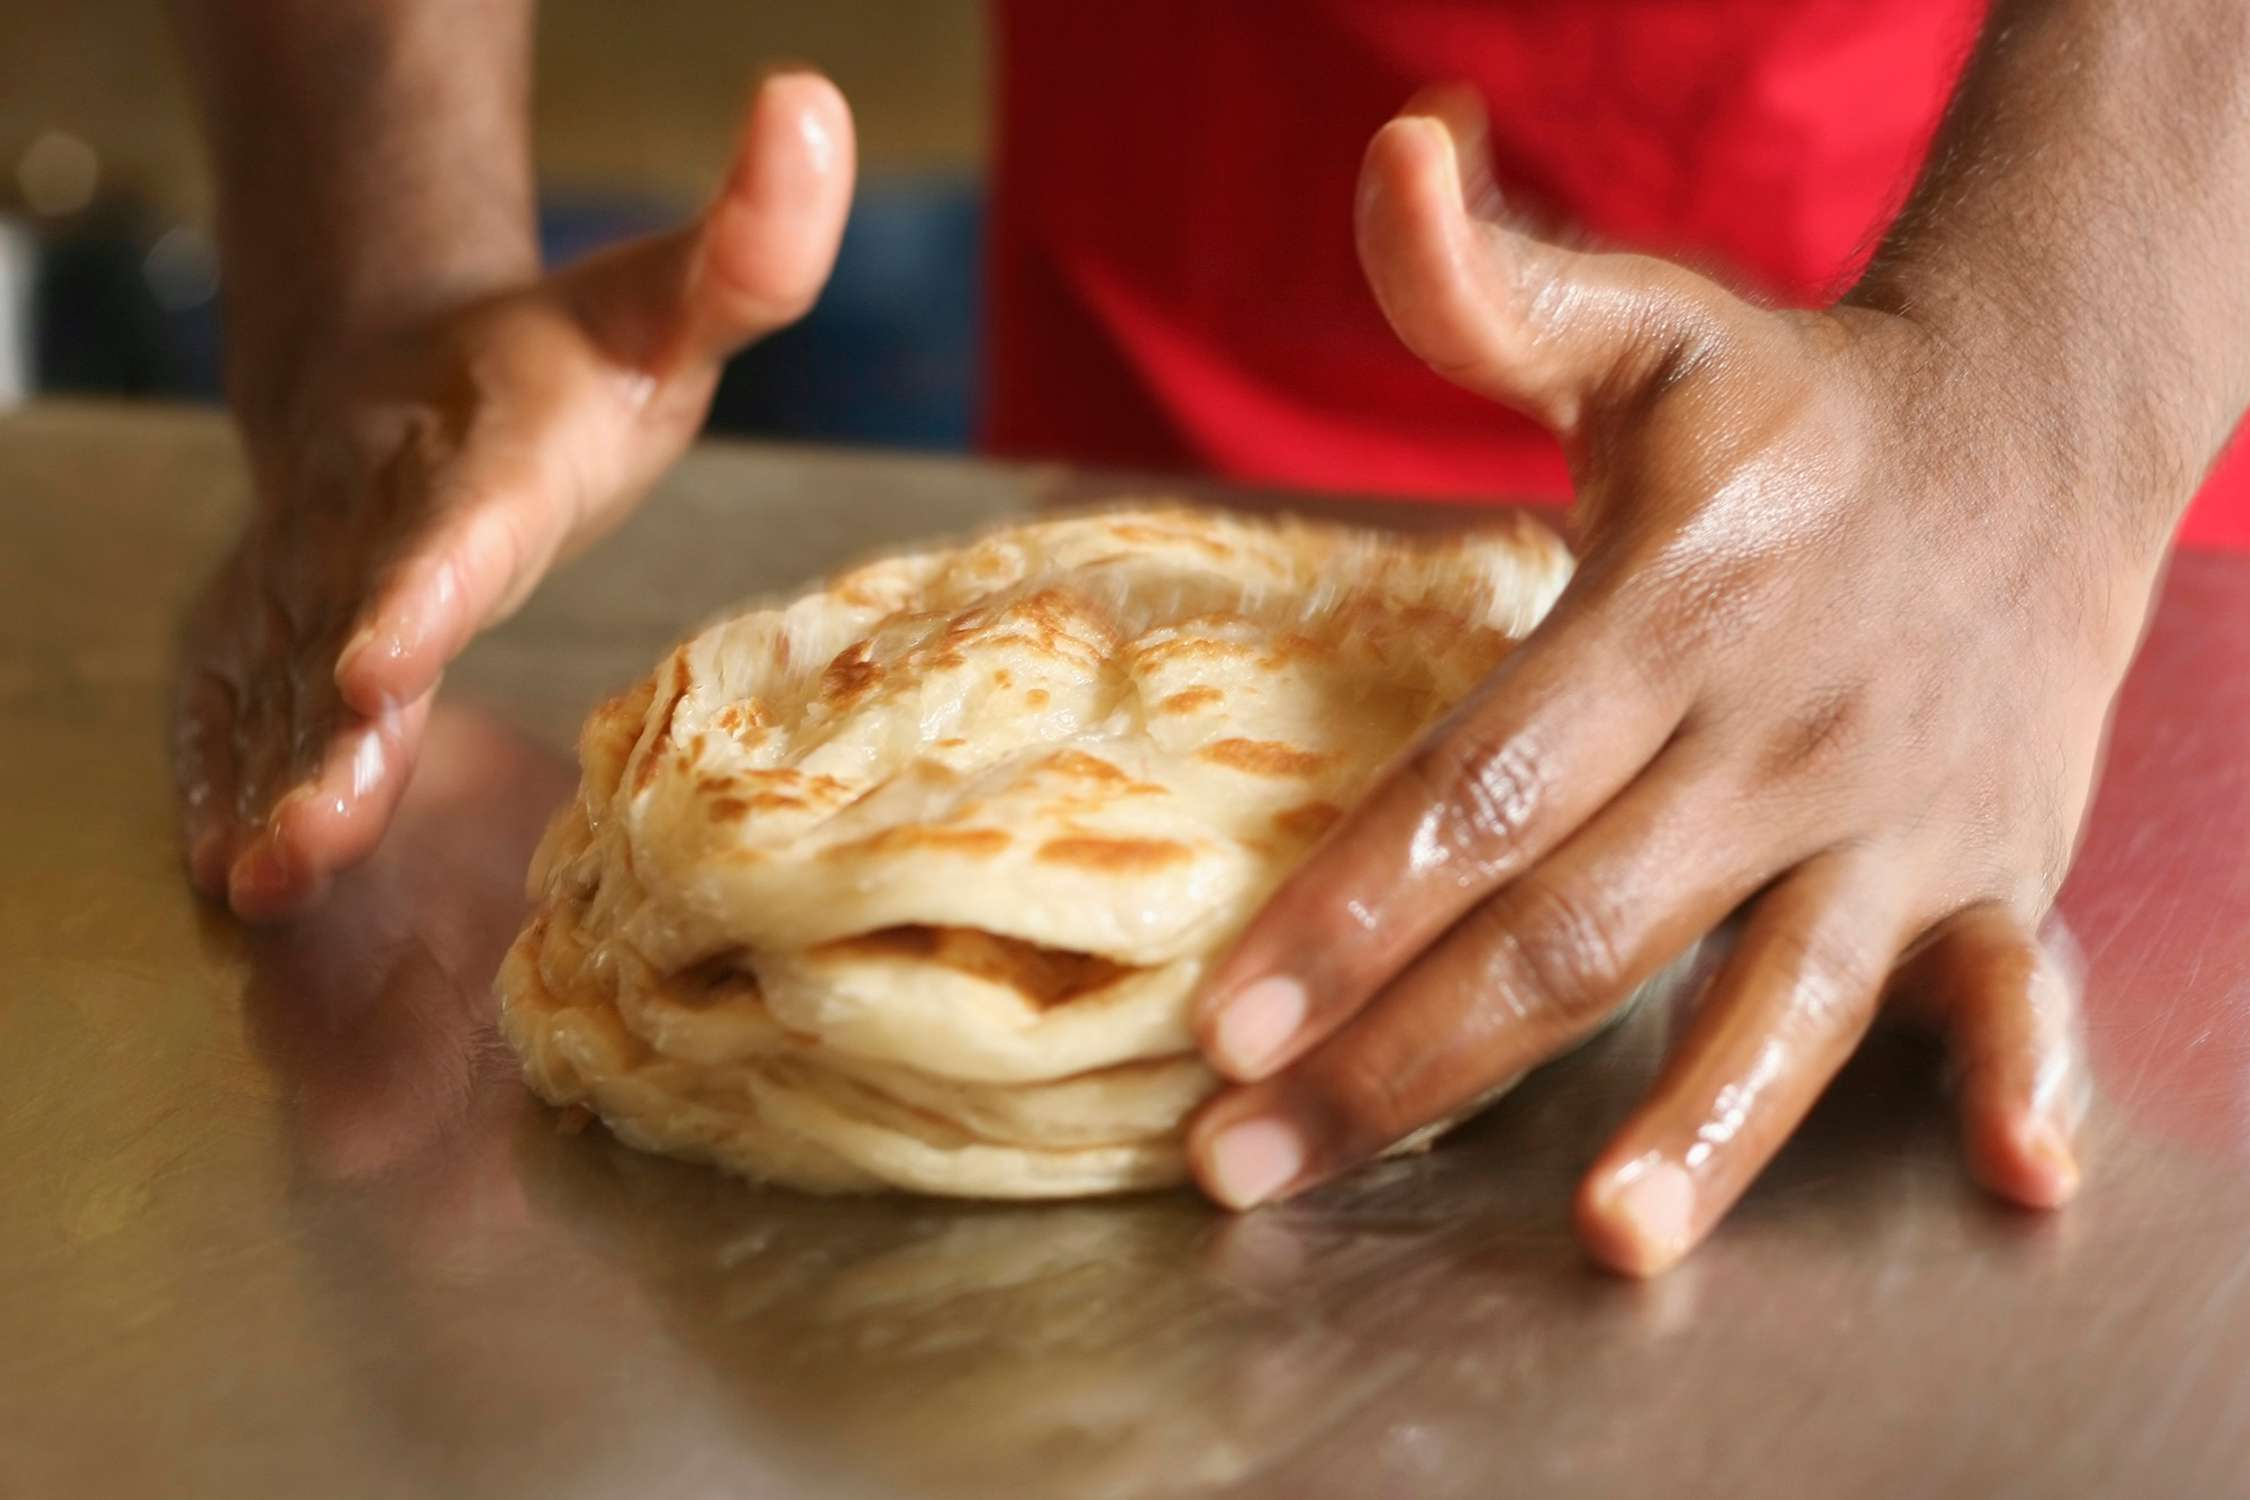 Giving the roti canai a whack to fluff it up